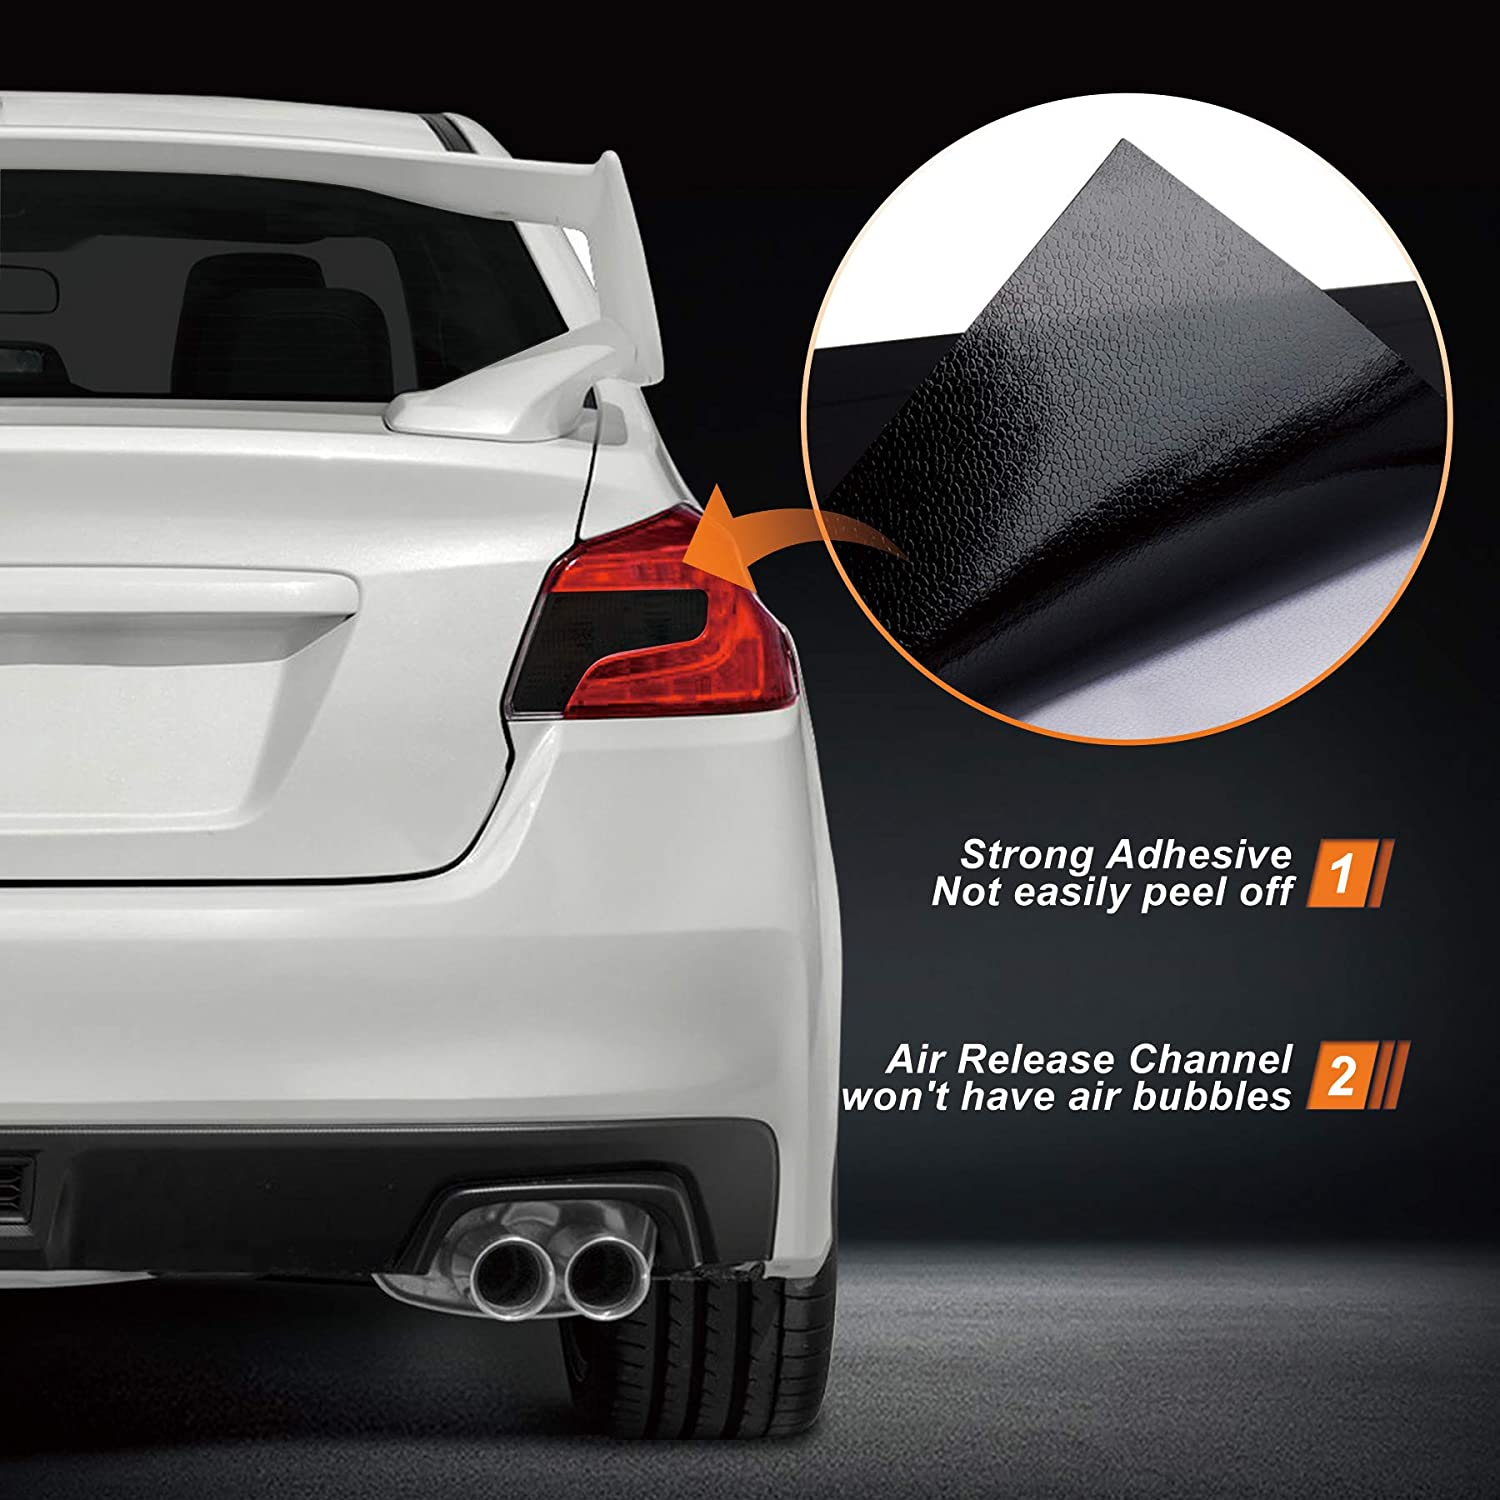 Air-Release Tail Light Wrap Cover Compatible with 2015-2020 Subaru WRX//STI NDRUSH Blackout Taillight Vinyl Tint Film Precut Overlays